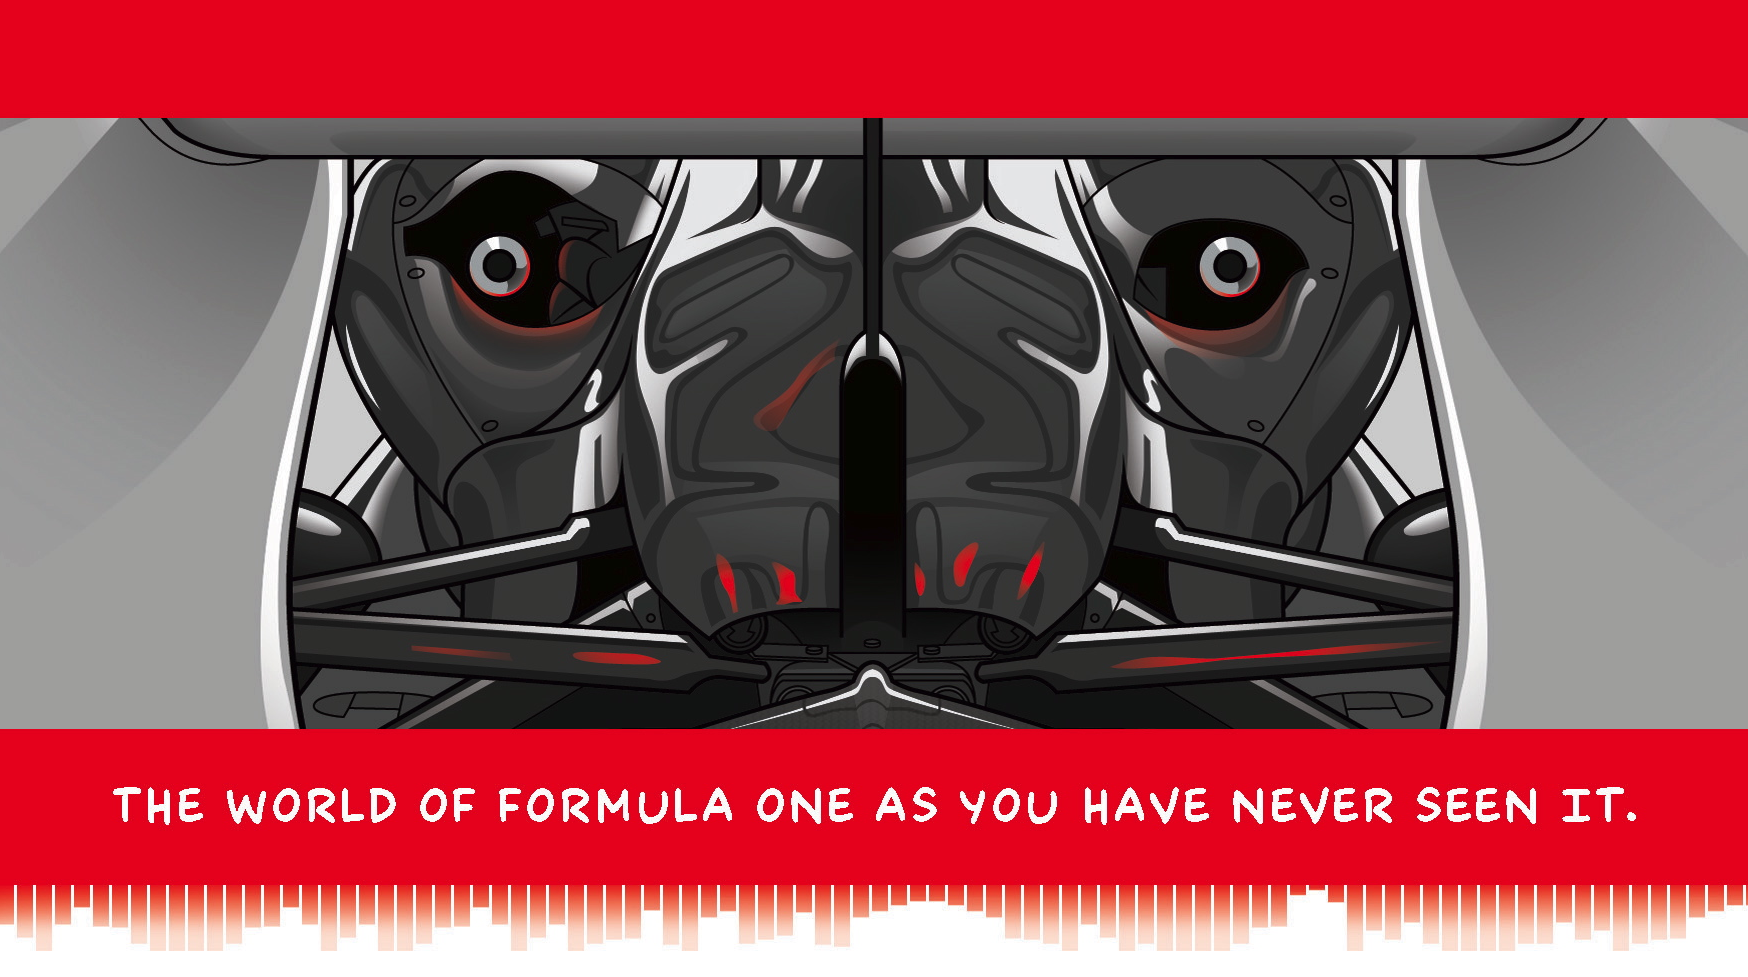 Illustration from  The Art of War - Five Years in Formula One  © Adam Parr 2012.